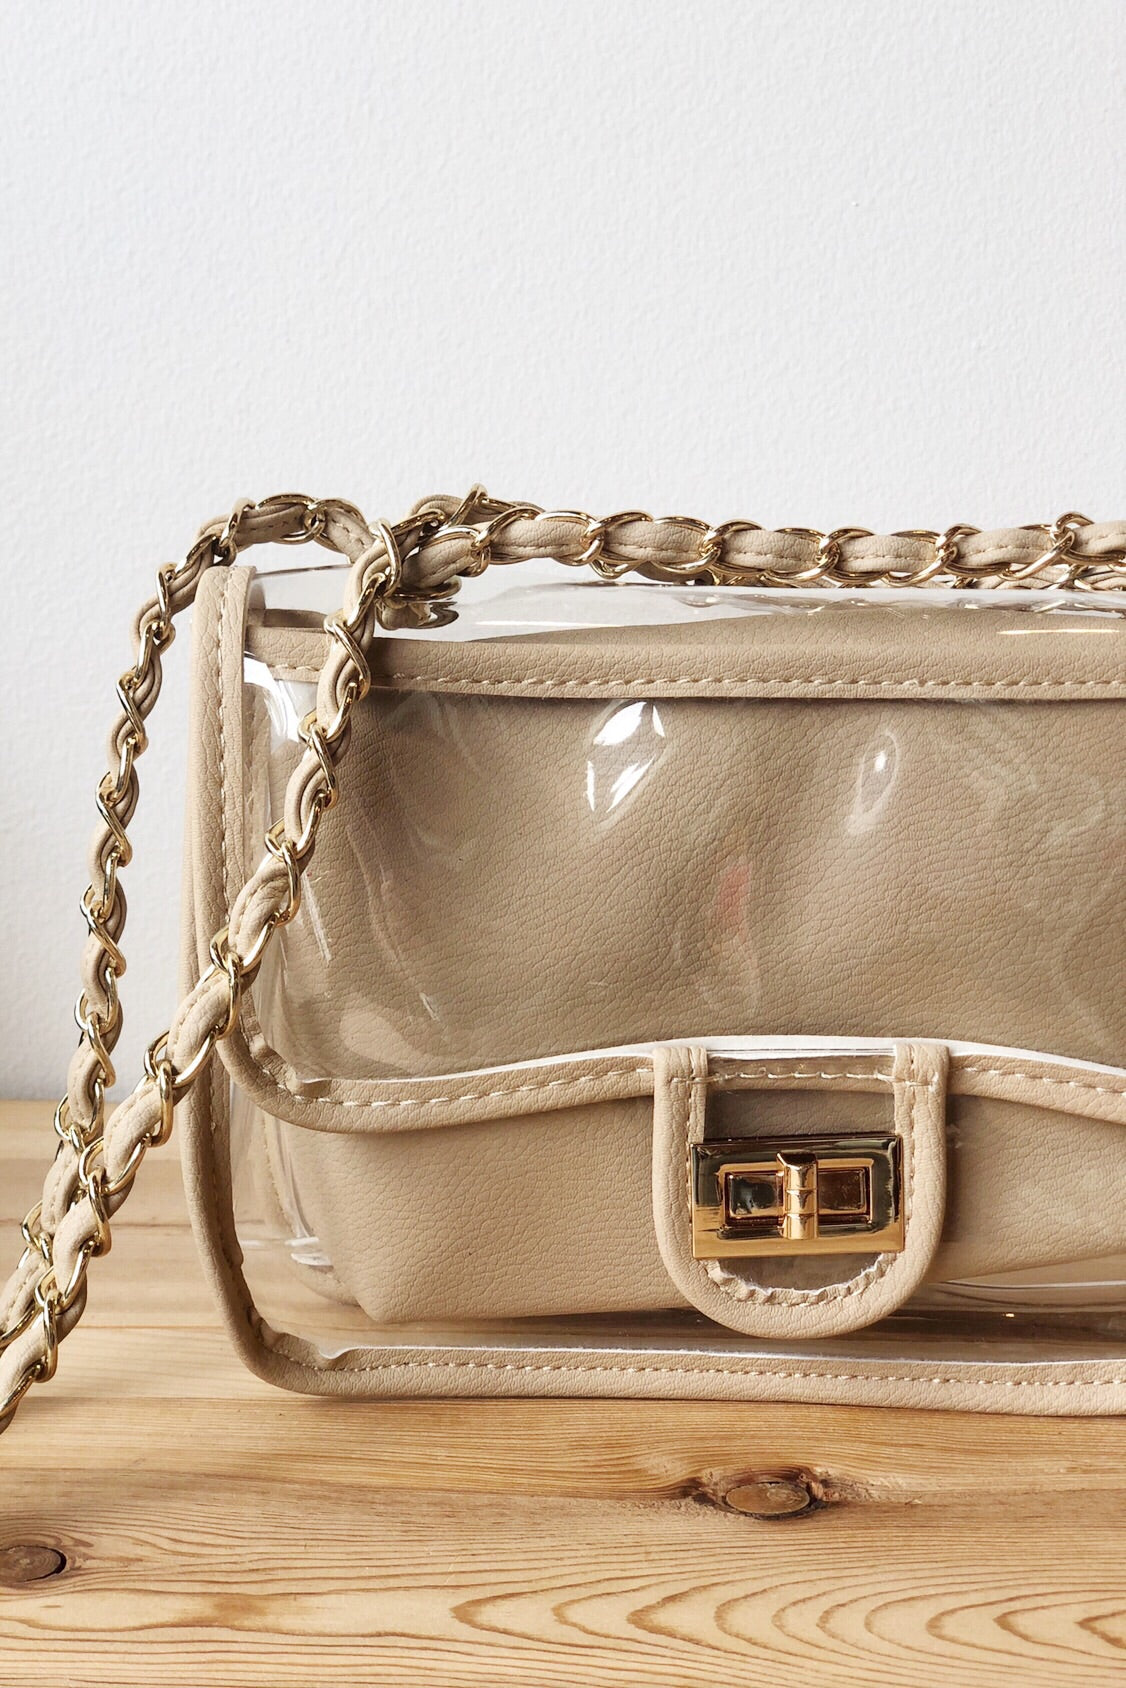 clear bag w/ chain